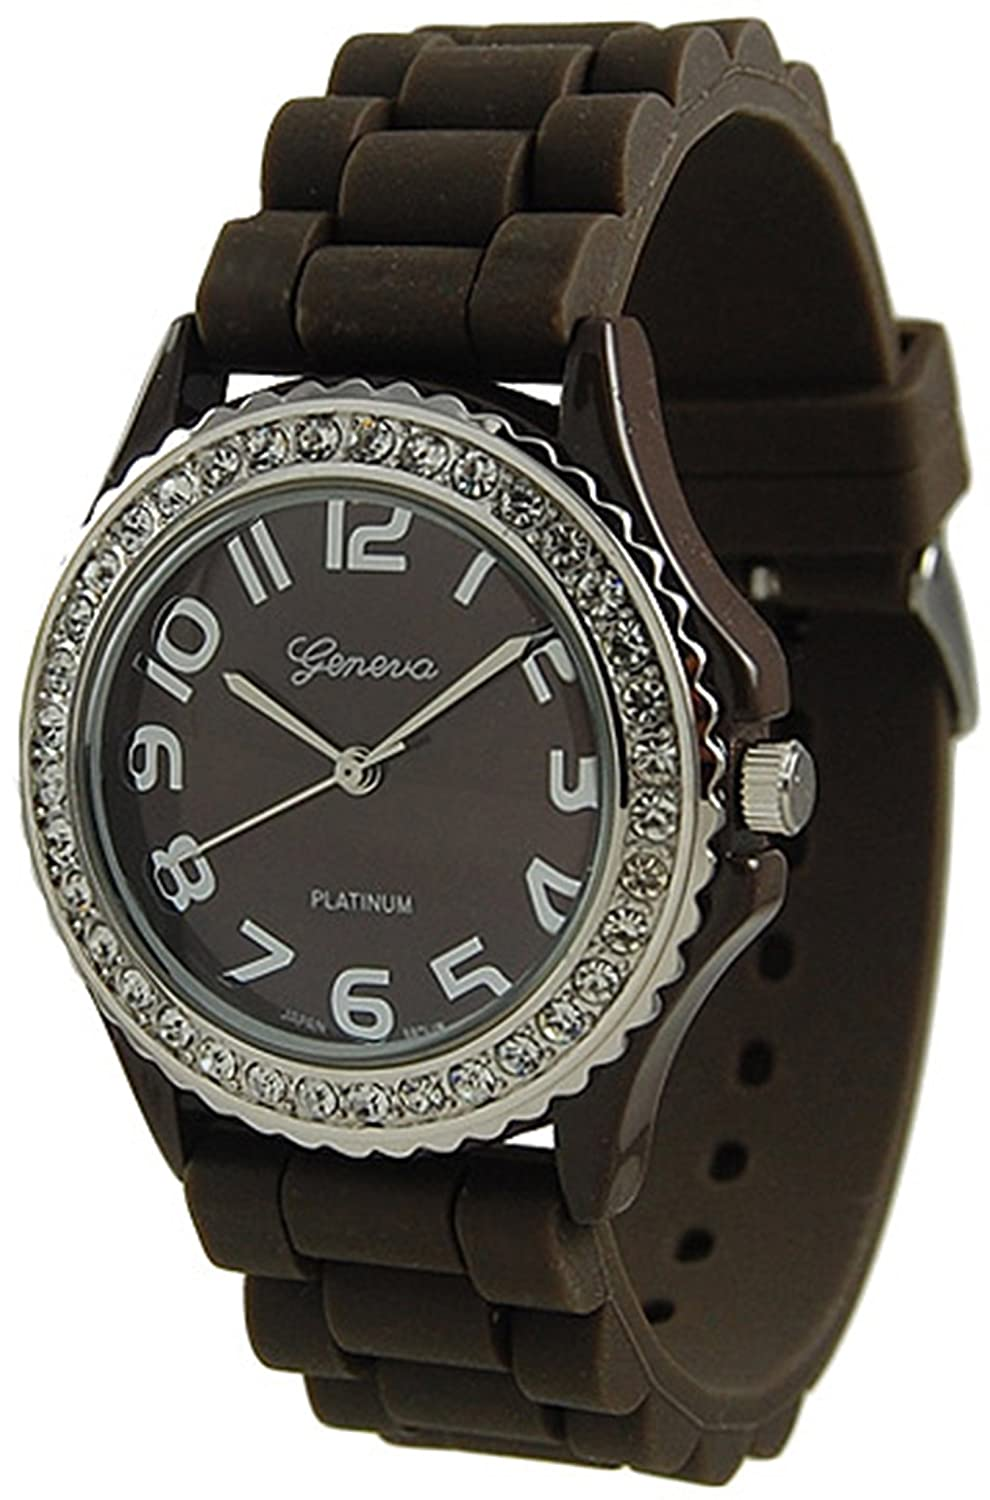 Женские наручные часы Geneva Platinum Women's 6886.Brown Brown Rubber Quartz Watch with Brown Dial